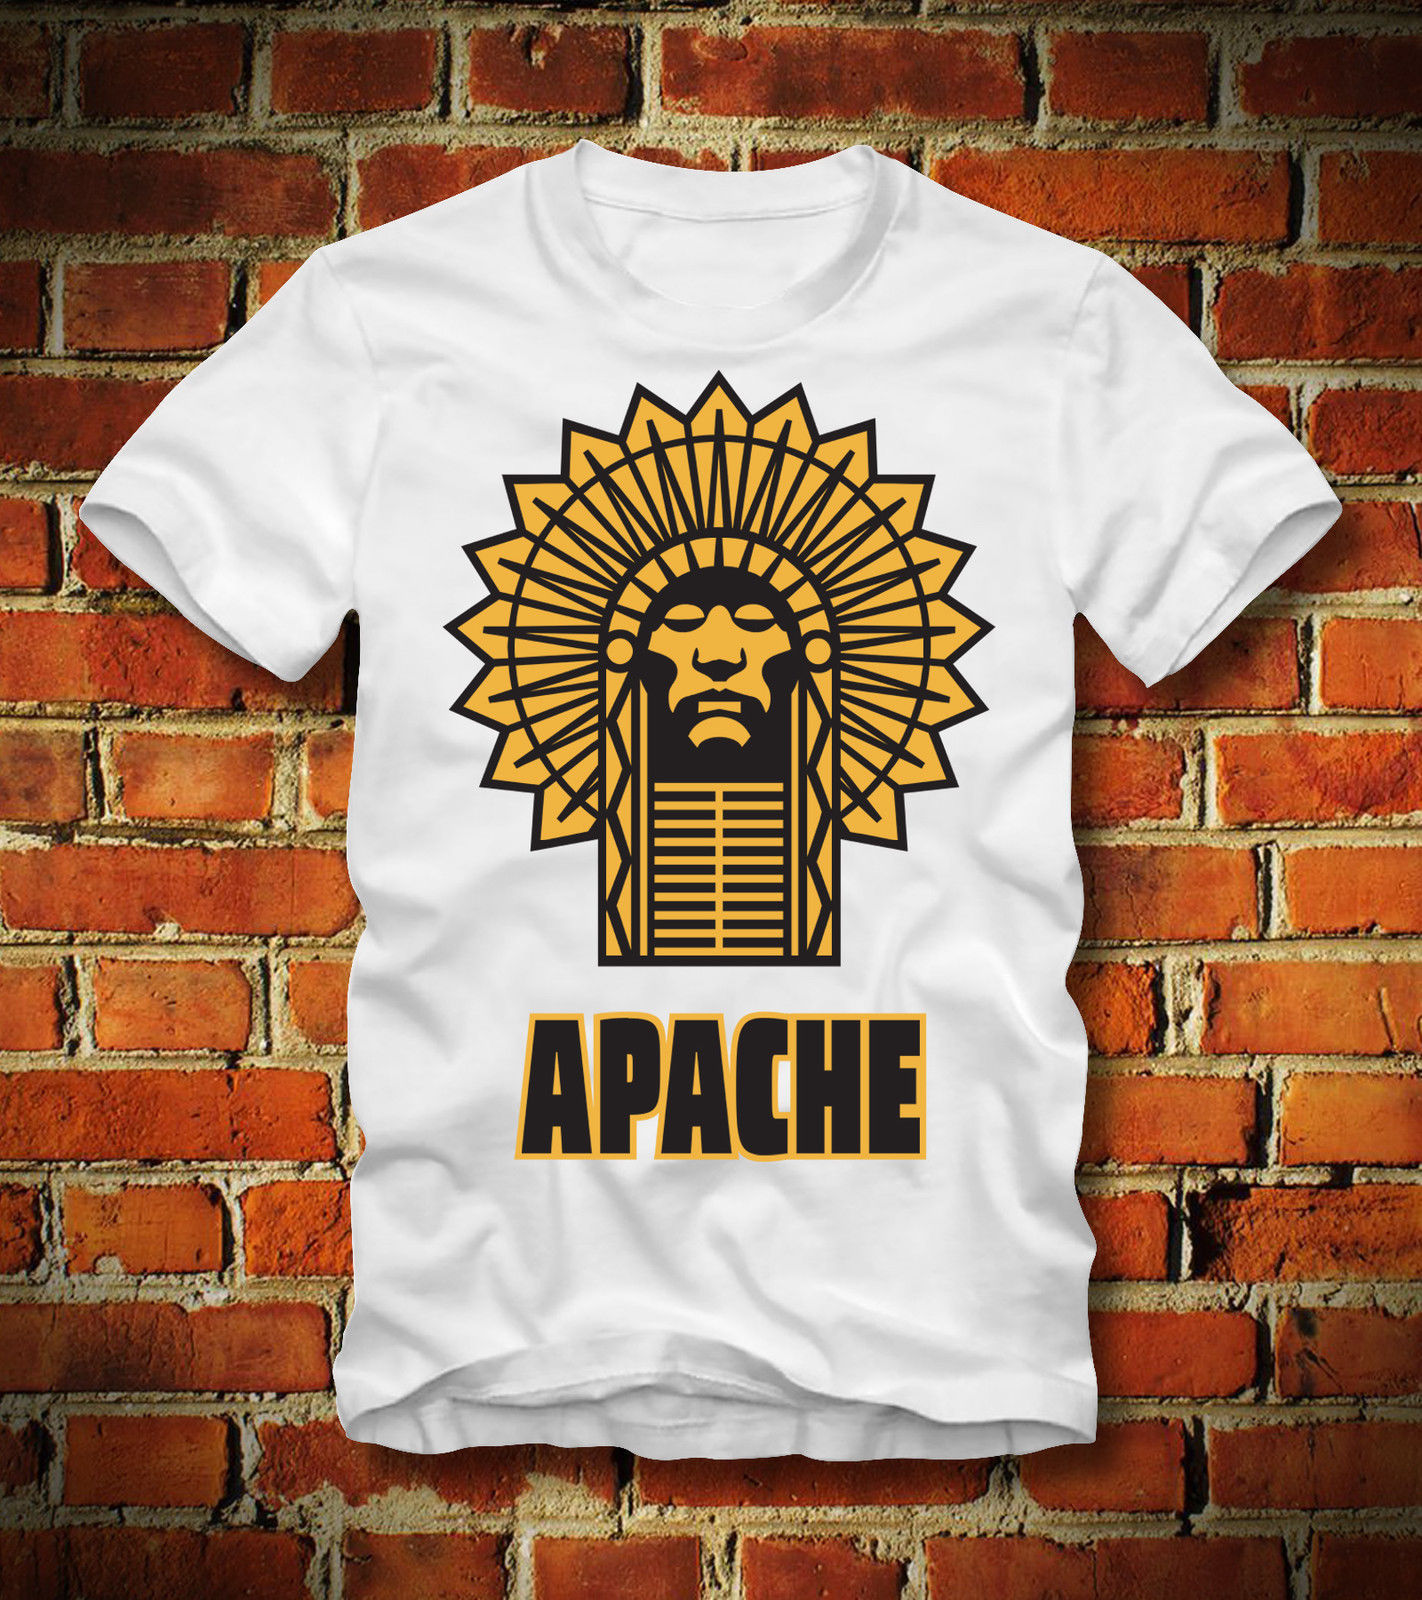 2018 New Summer Tee Shirt Funny T SHIRT APACHE Funny INDIANER RETRO VINTAGE AMERICAN MOTORCYCLE USA Custom T-shirt